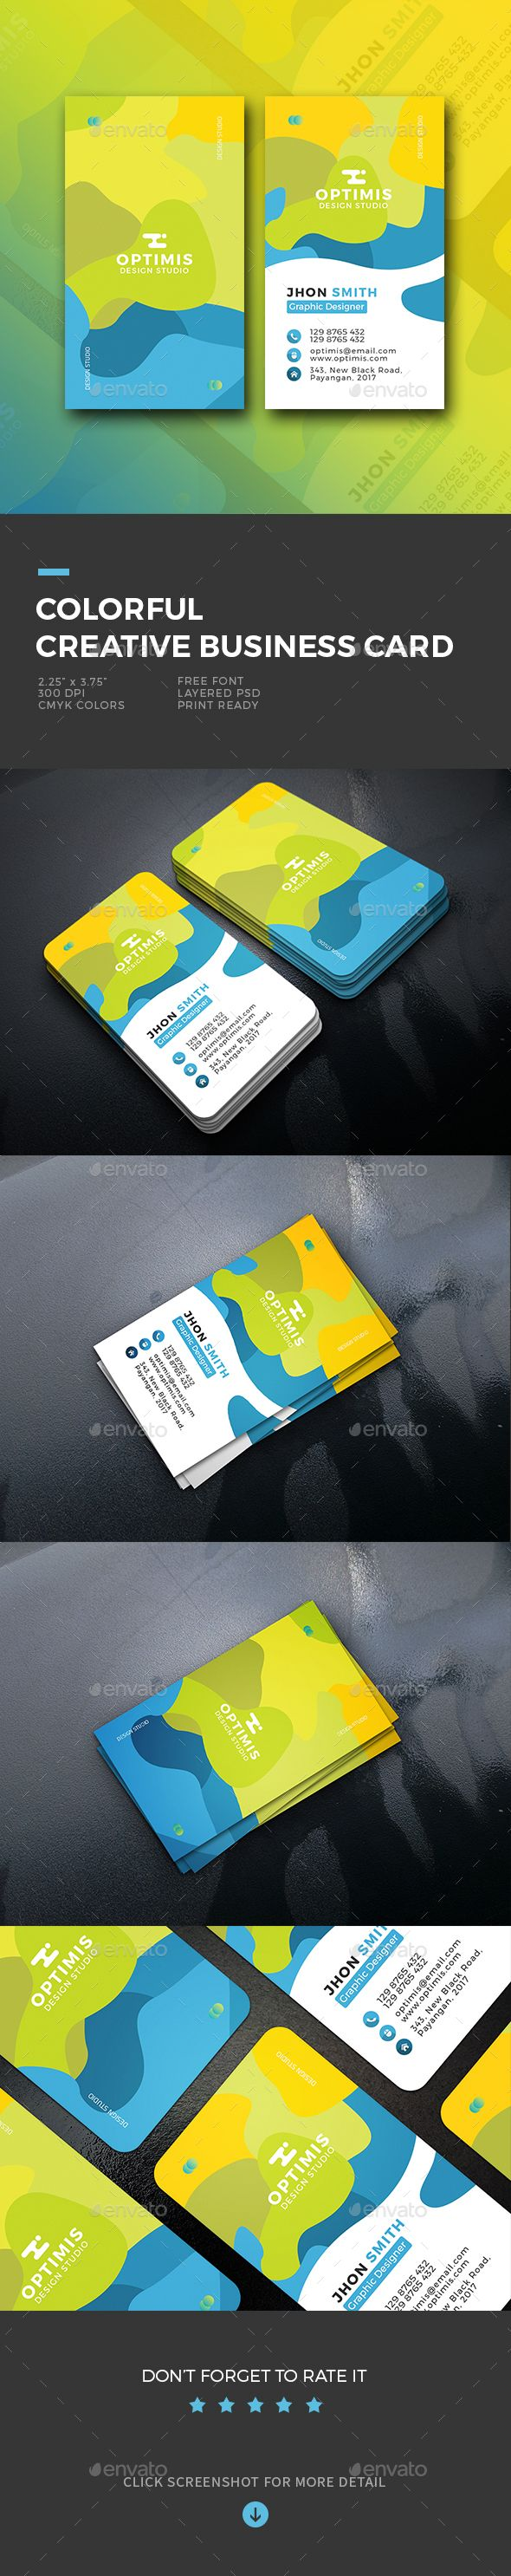 Colorful Creative #Business #Card - Creative Business Cards Download here: https://graphicriver.net/item/colorful-creative-business-card/20121184?ref=alena994